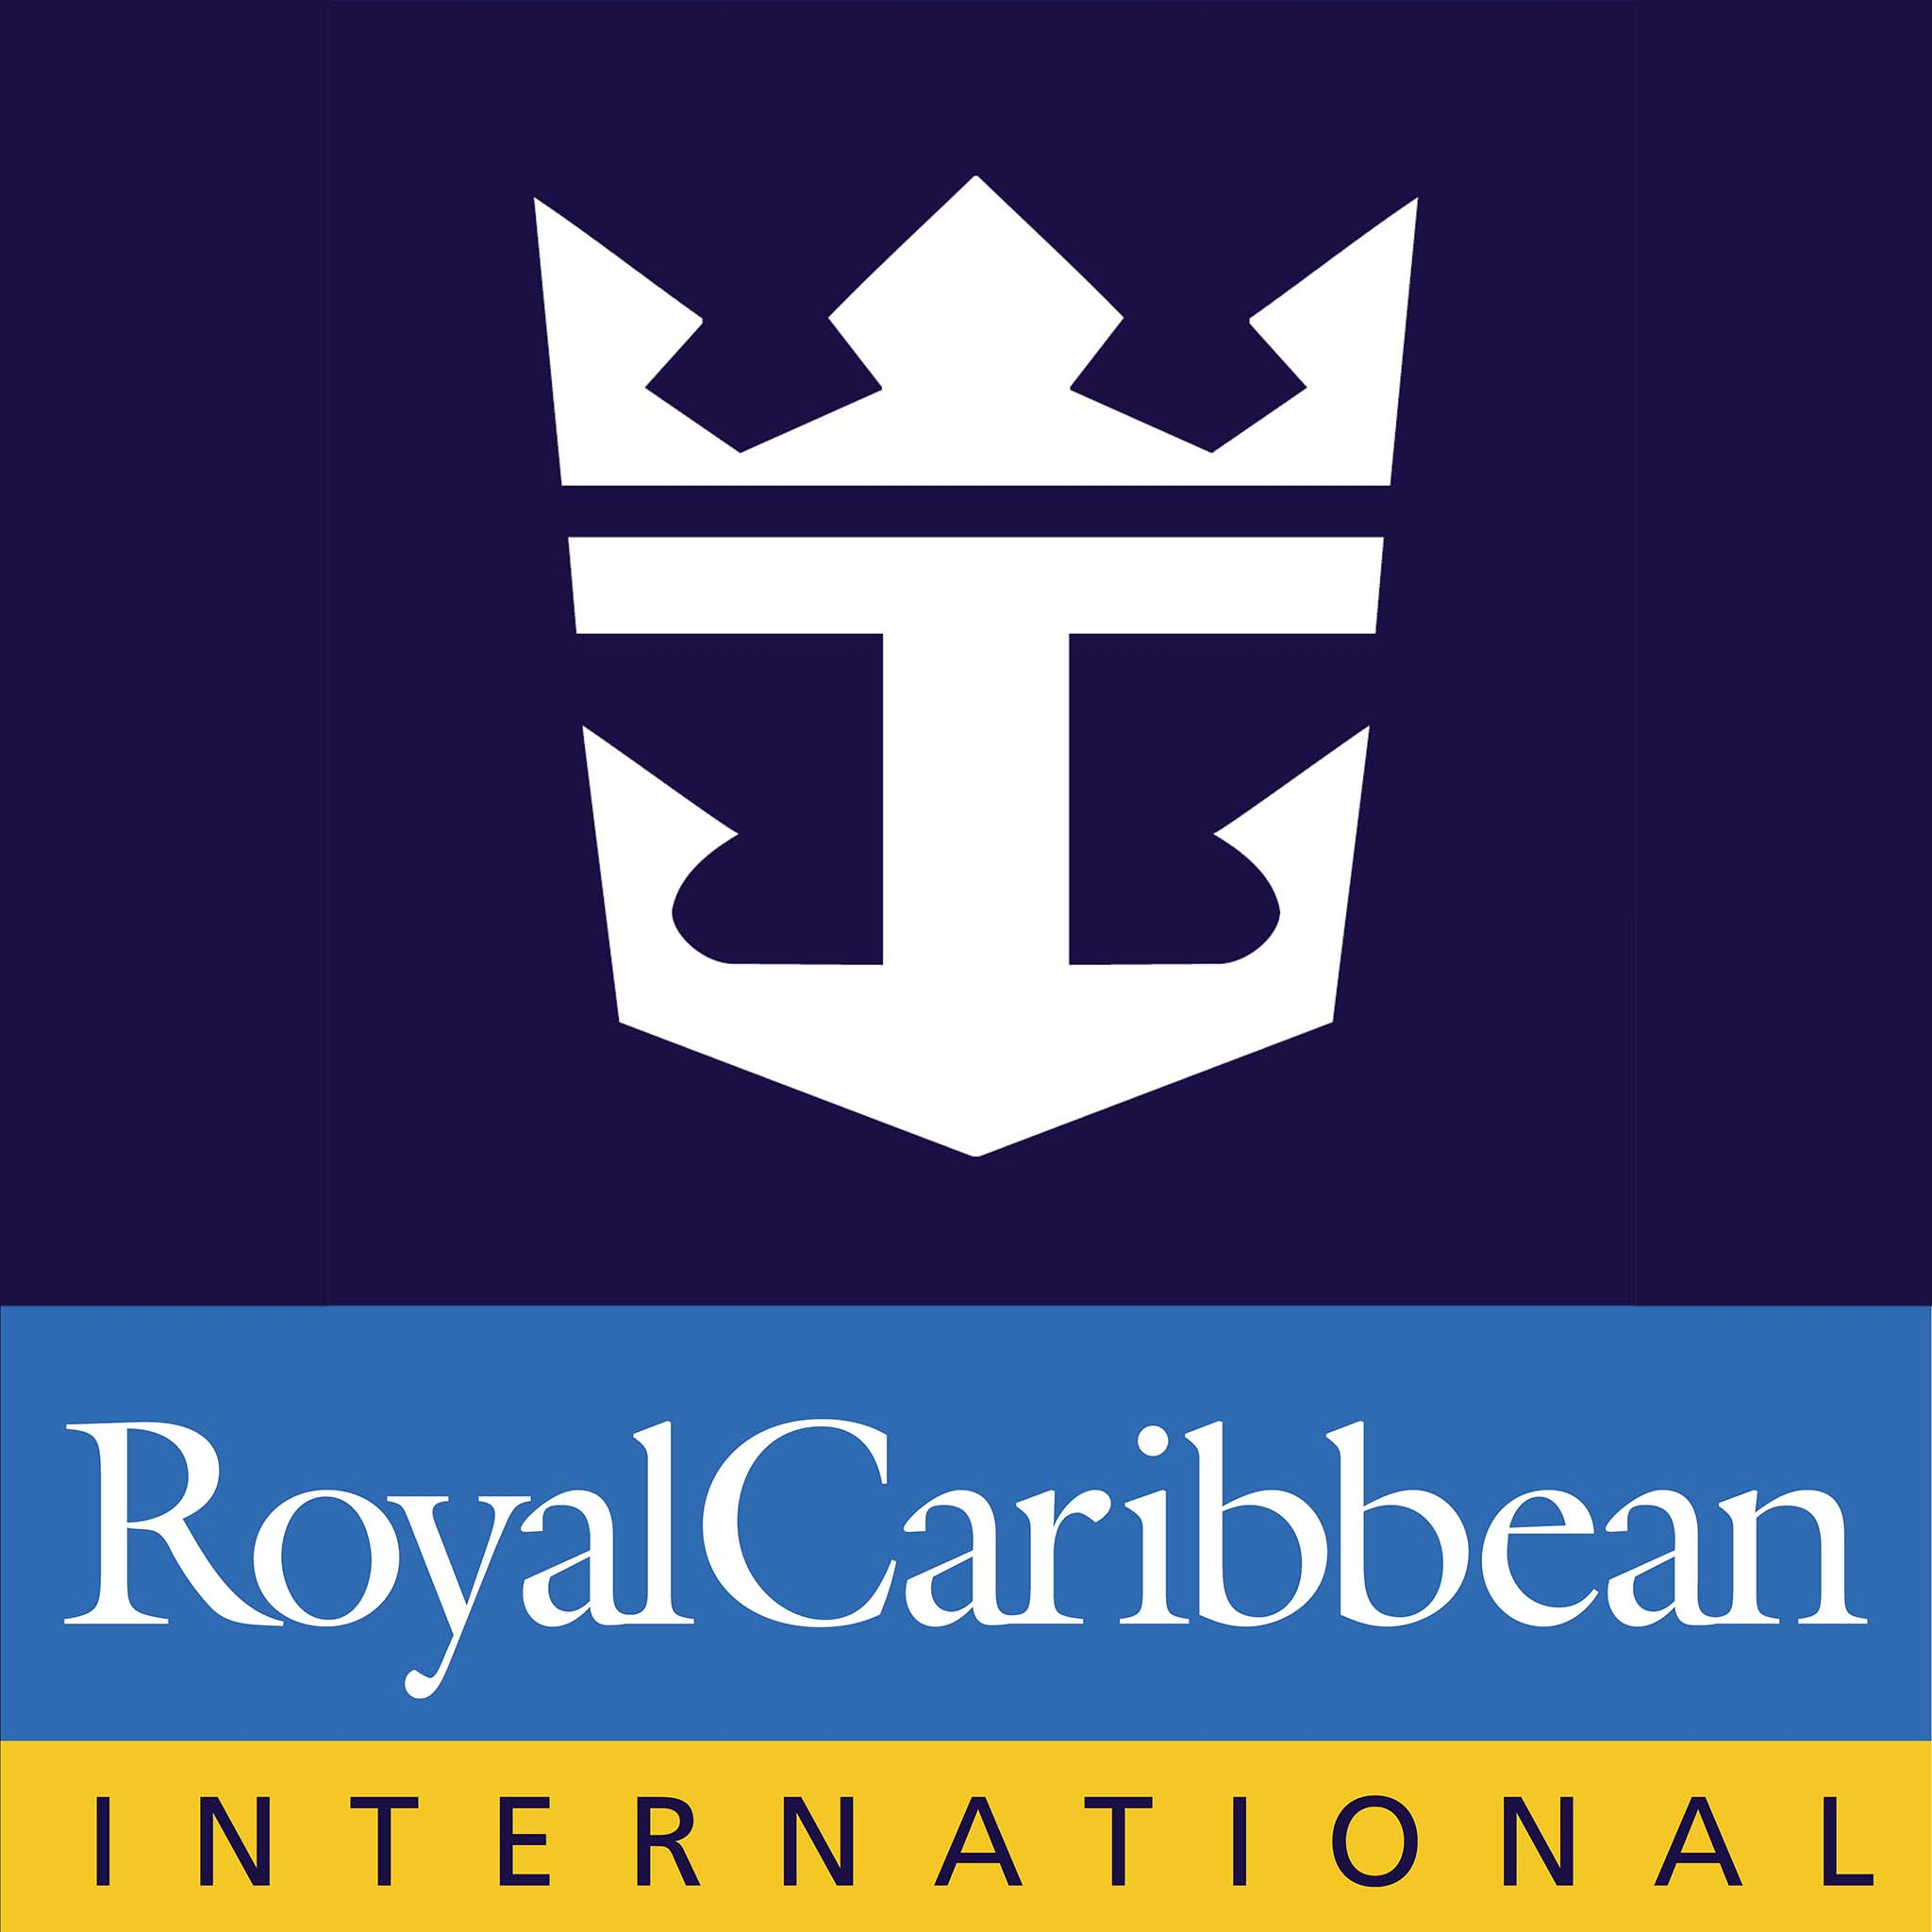 Starting at $399 Balcony & Suites Bonus - Save $100 on 2018-2020 Sailings! - Book almost ANY Royal Caribbean sailing with P.L.A.N.N.E.D. to Save $100 when booking a Balcony or higher cabin!